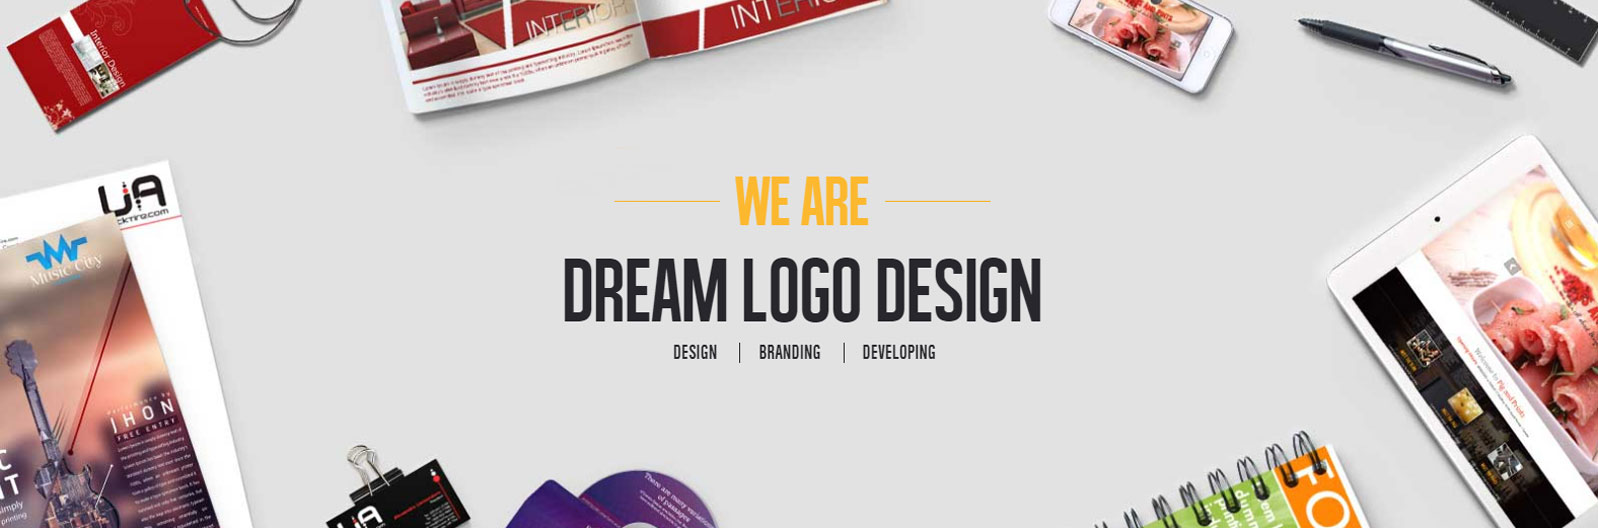 International Education Management Group Logo Design – DreamLogoDesign